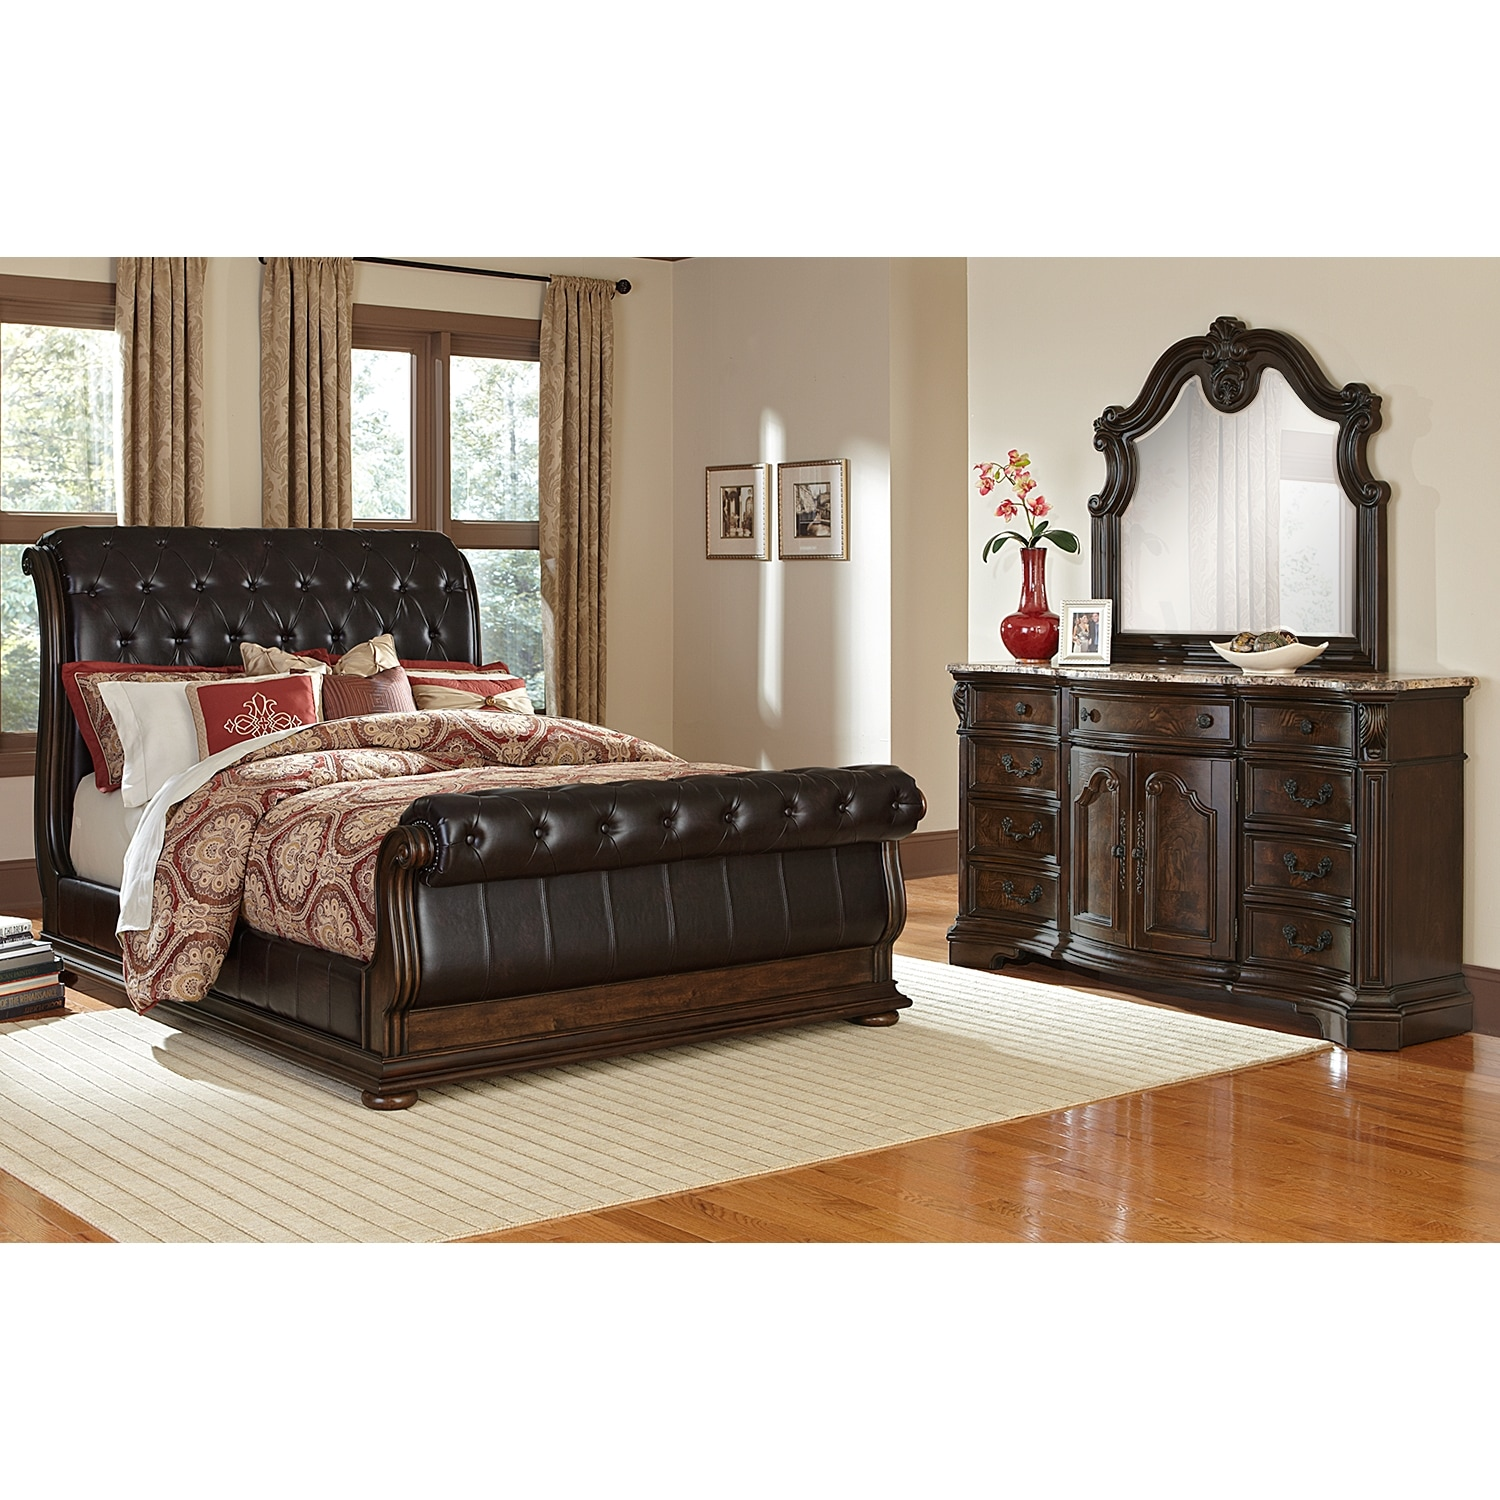 Monticello 5 Piece King Sleigh Bedroom Set   Pecan By Pulaski